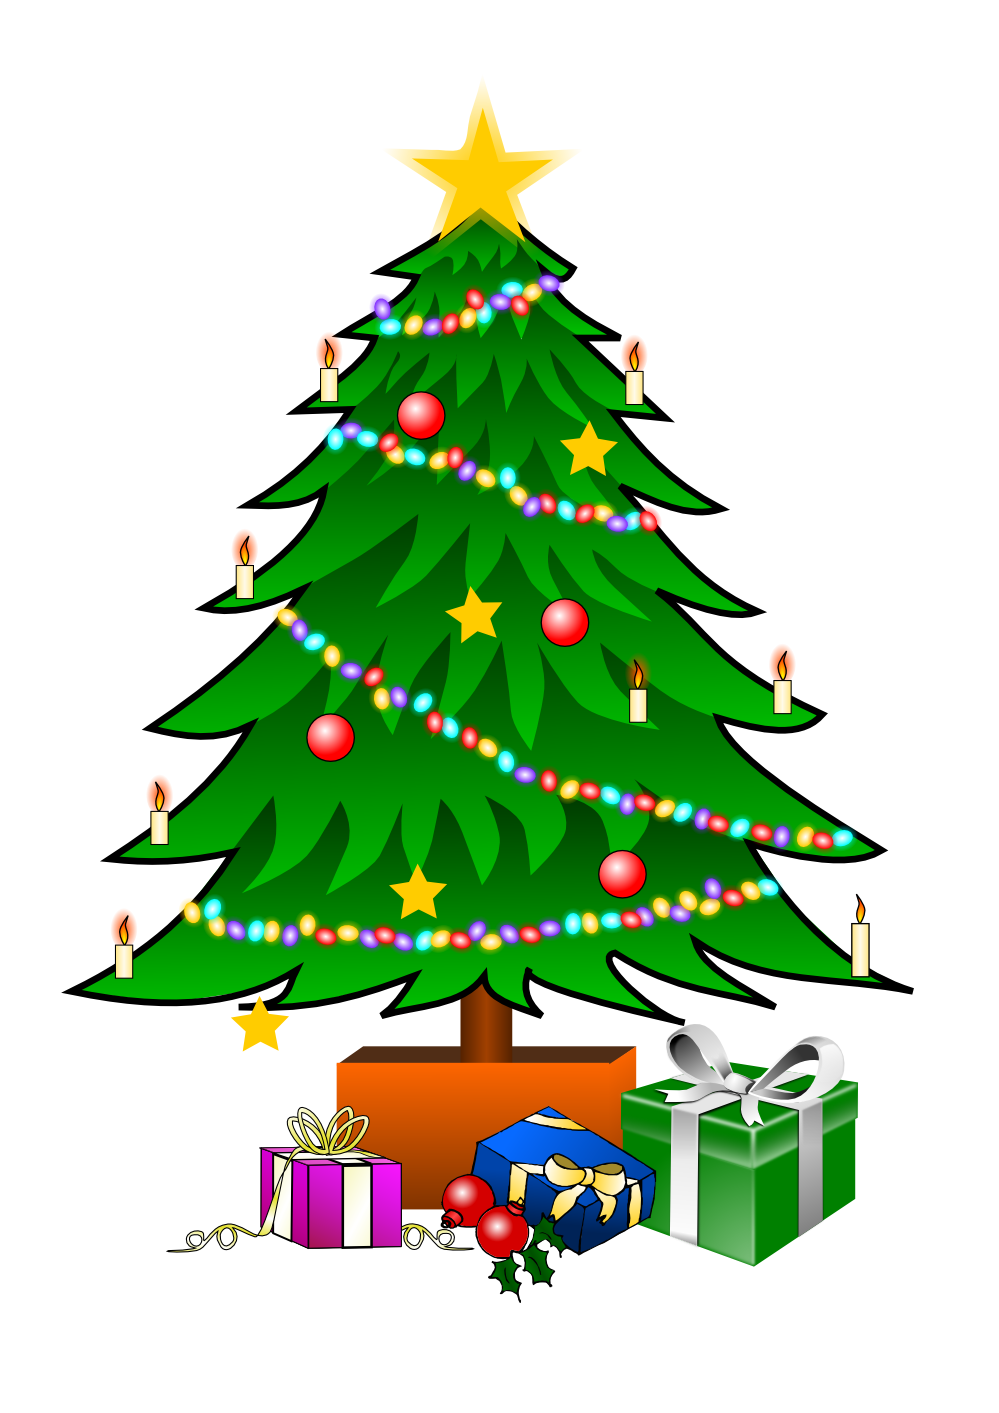 Christmas singing clipart vector transparent This nice Christmas tree with presents clip art can be used for ... vector transparent